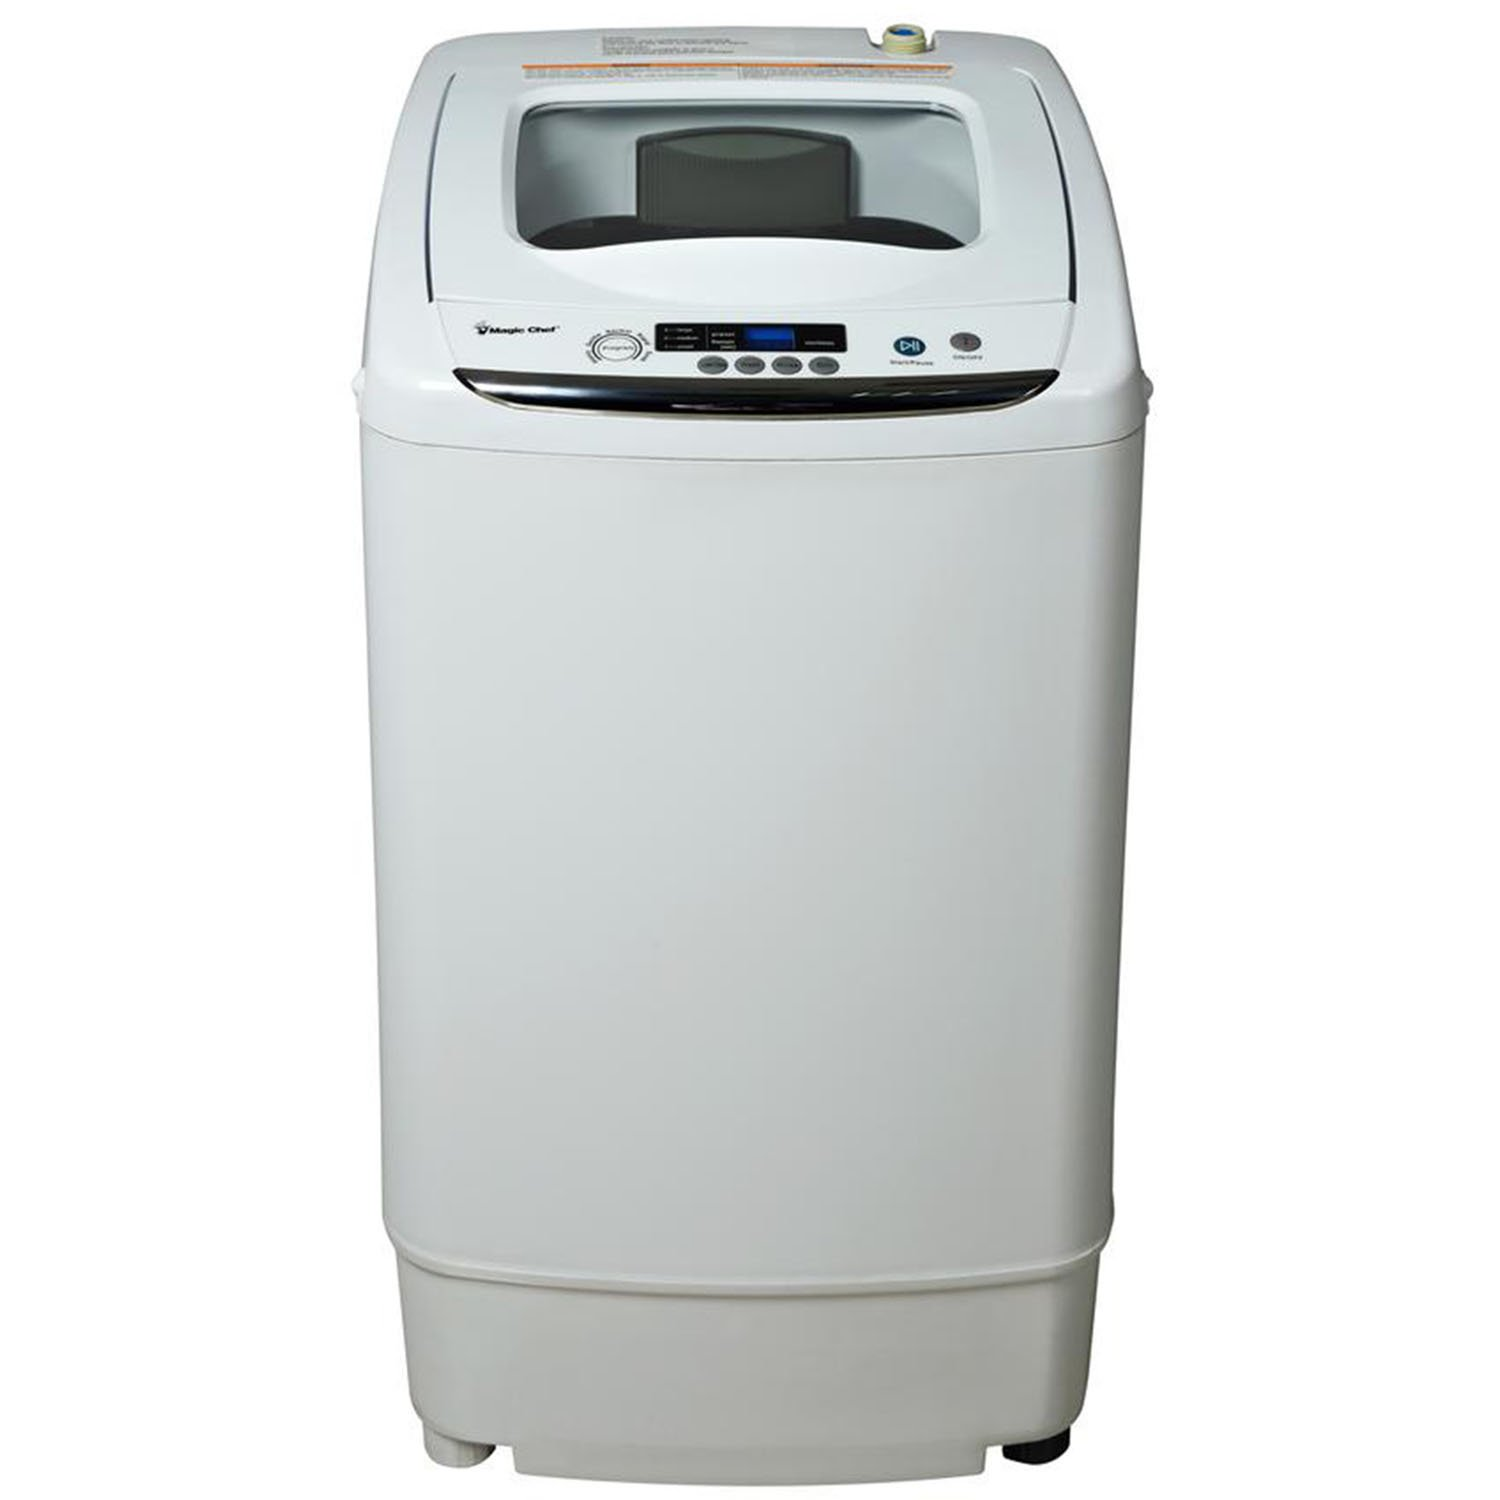 Magic Chef MCSTCW09W1 Compact Washer